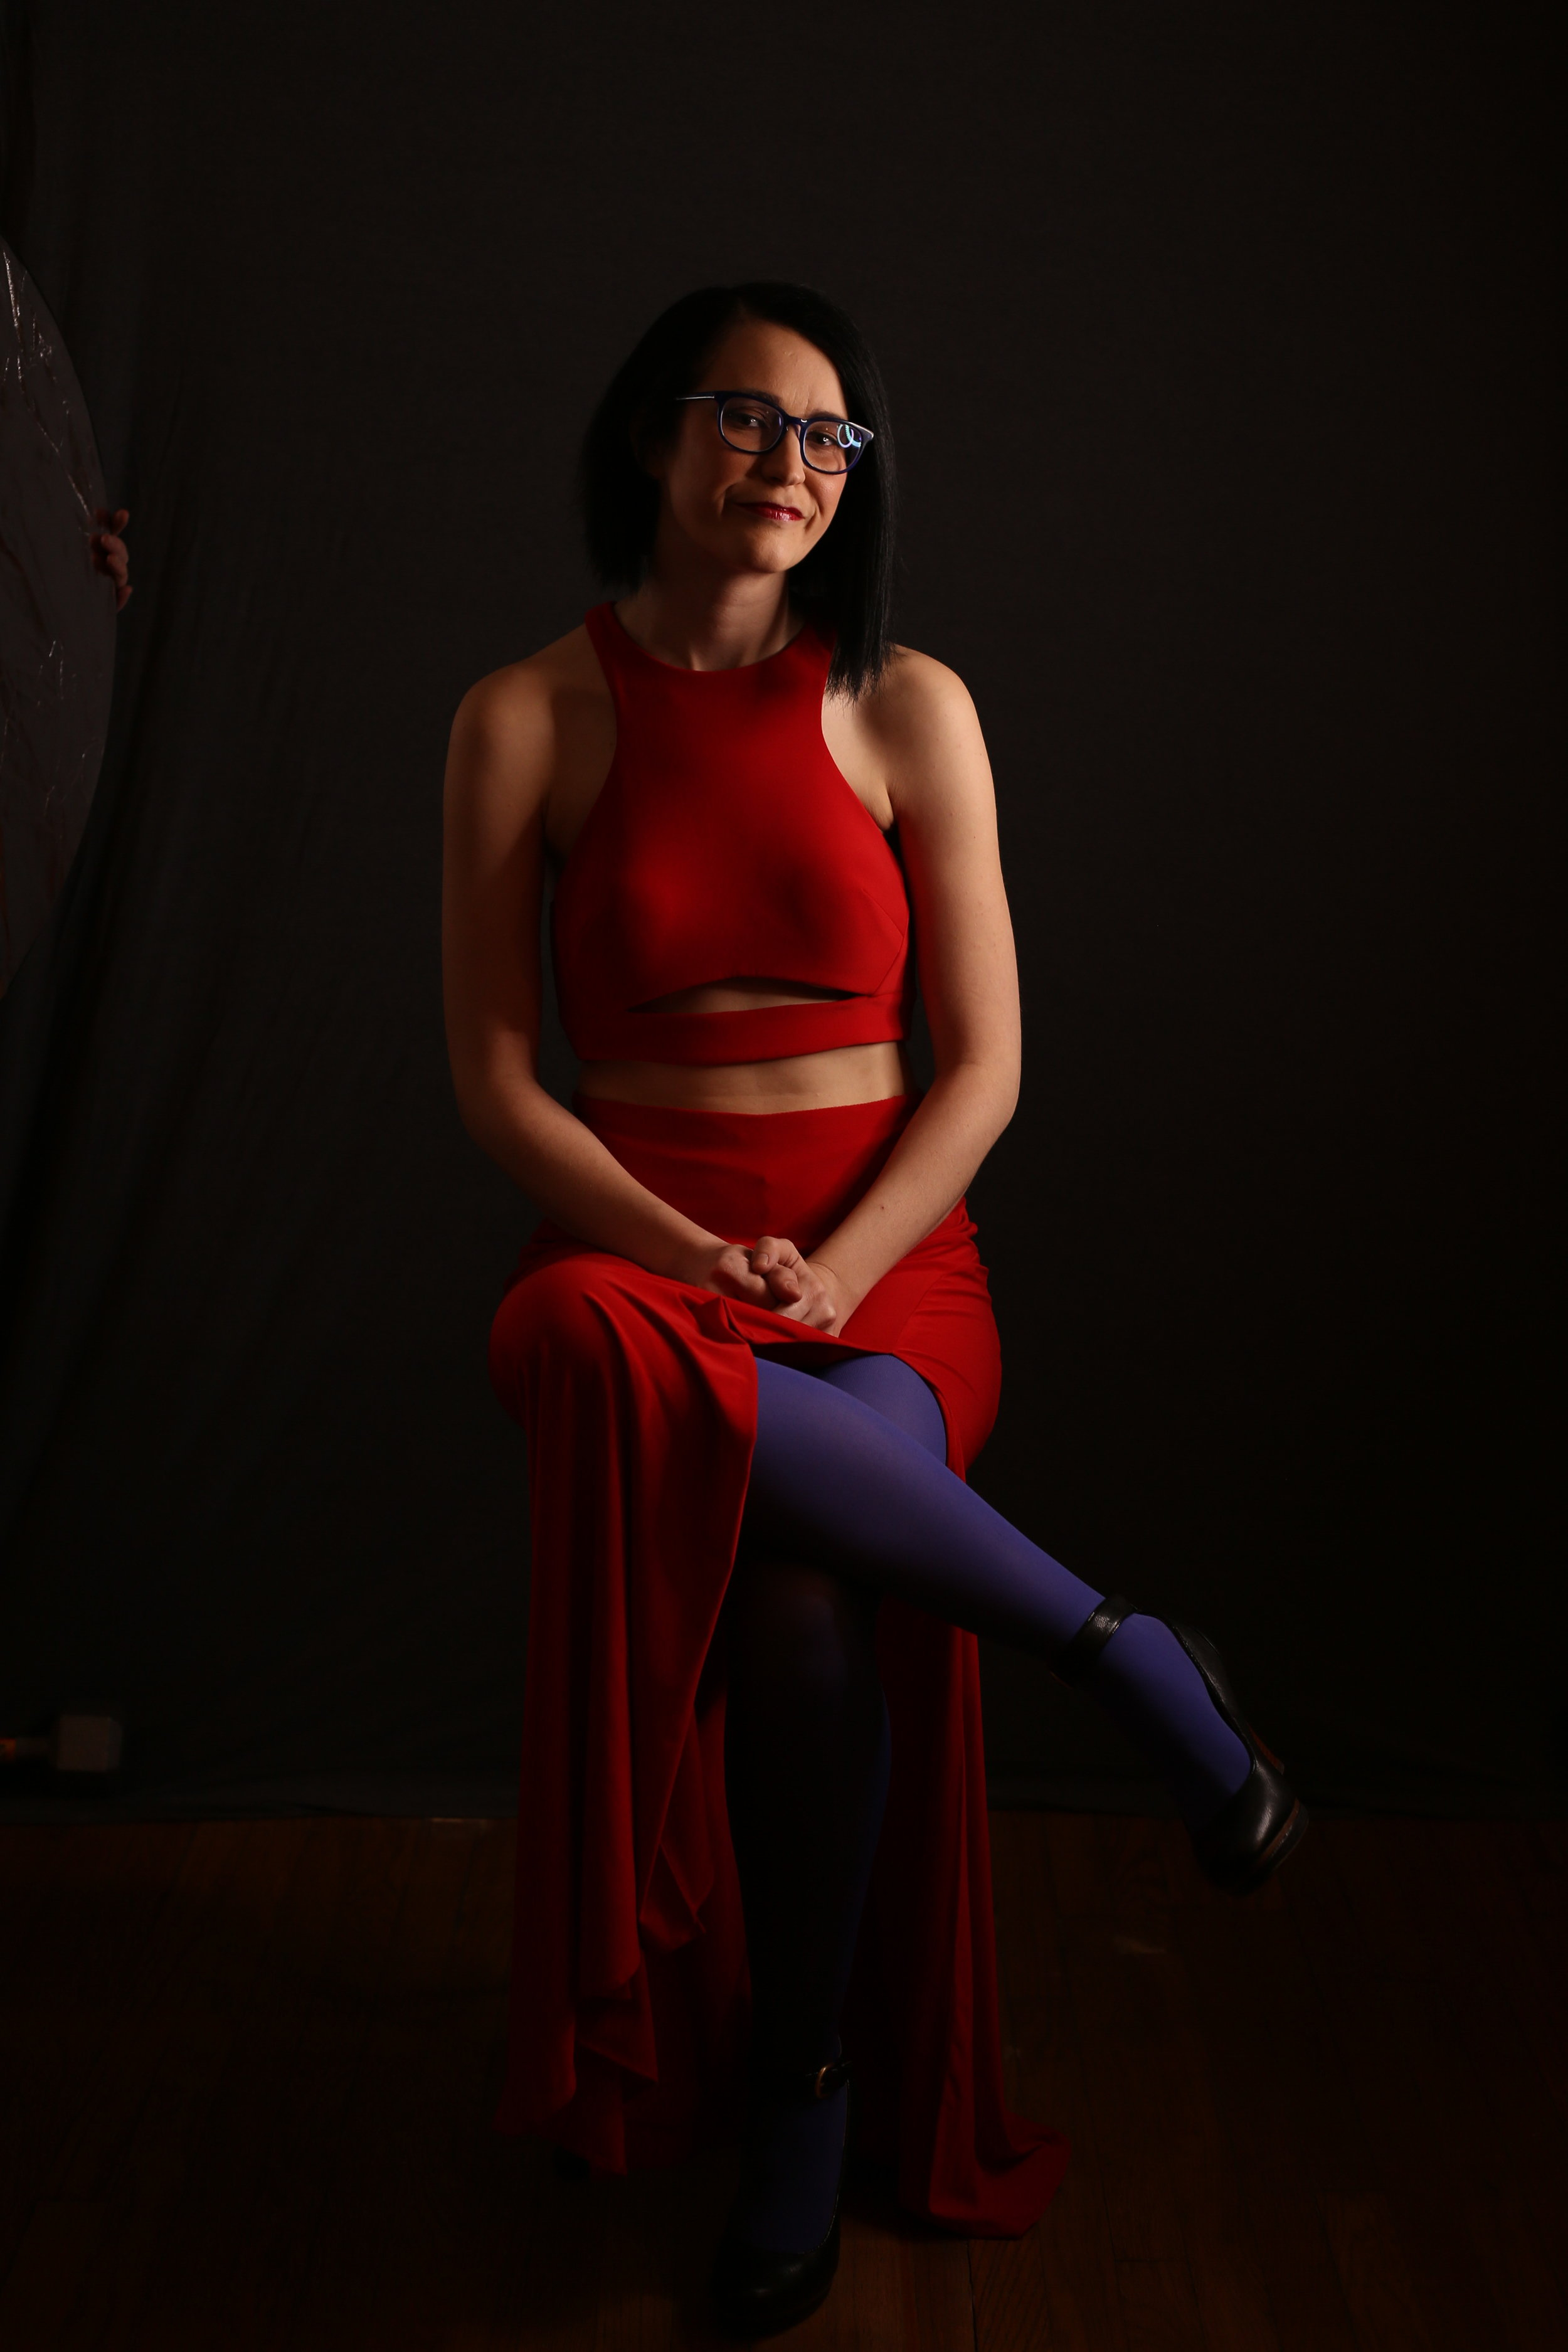 Red Dress with Glasses and Shoes.JPG